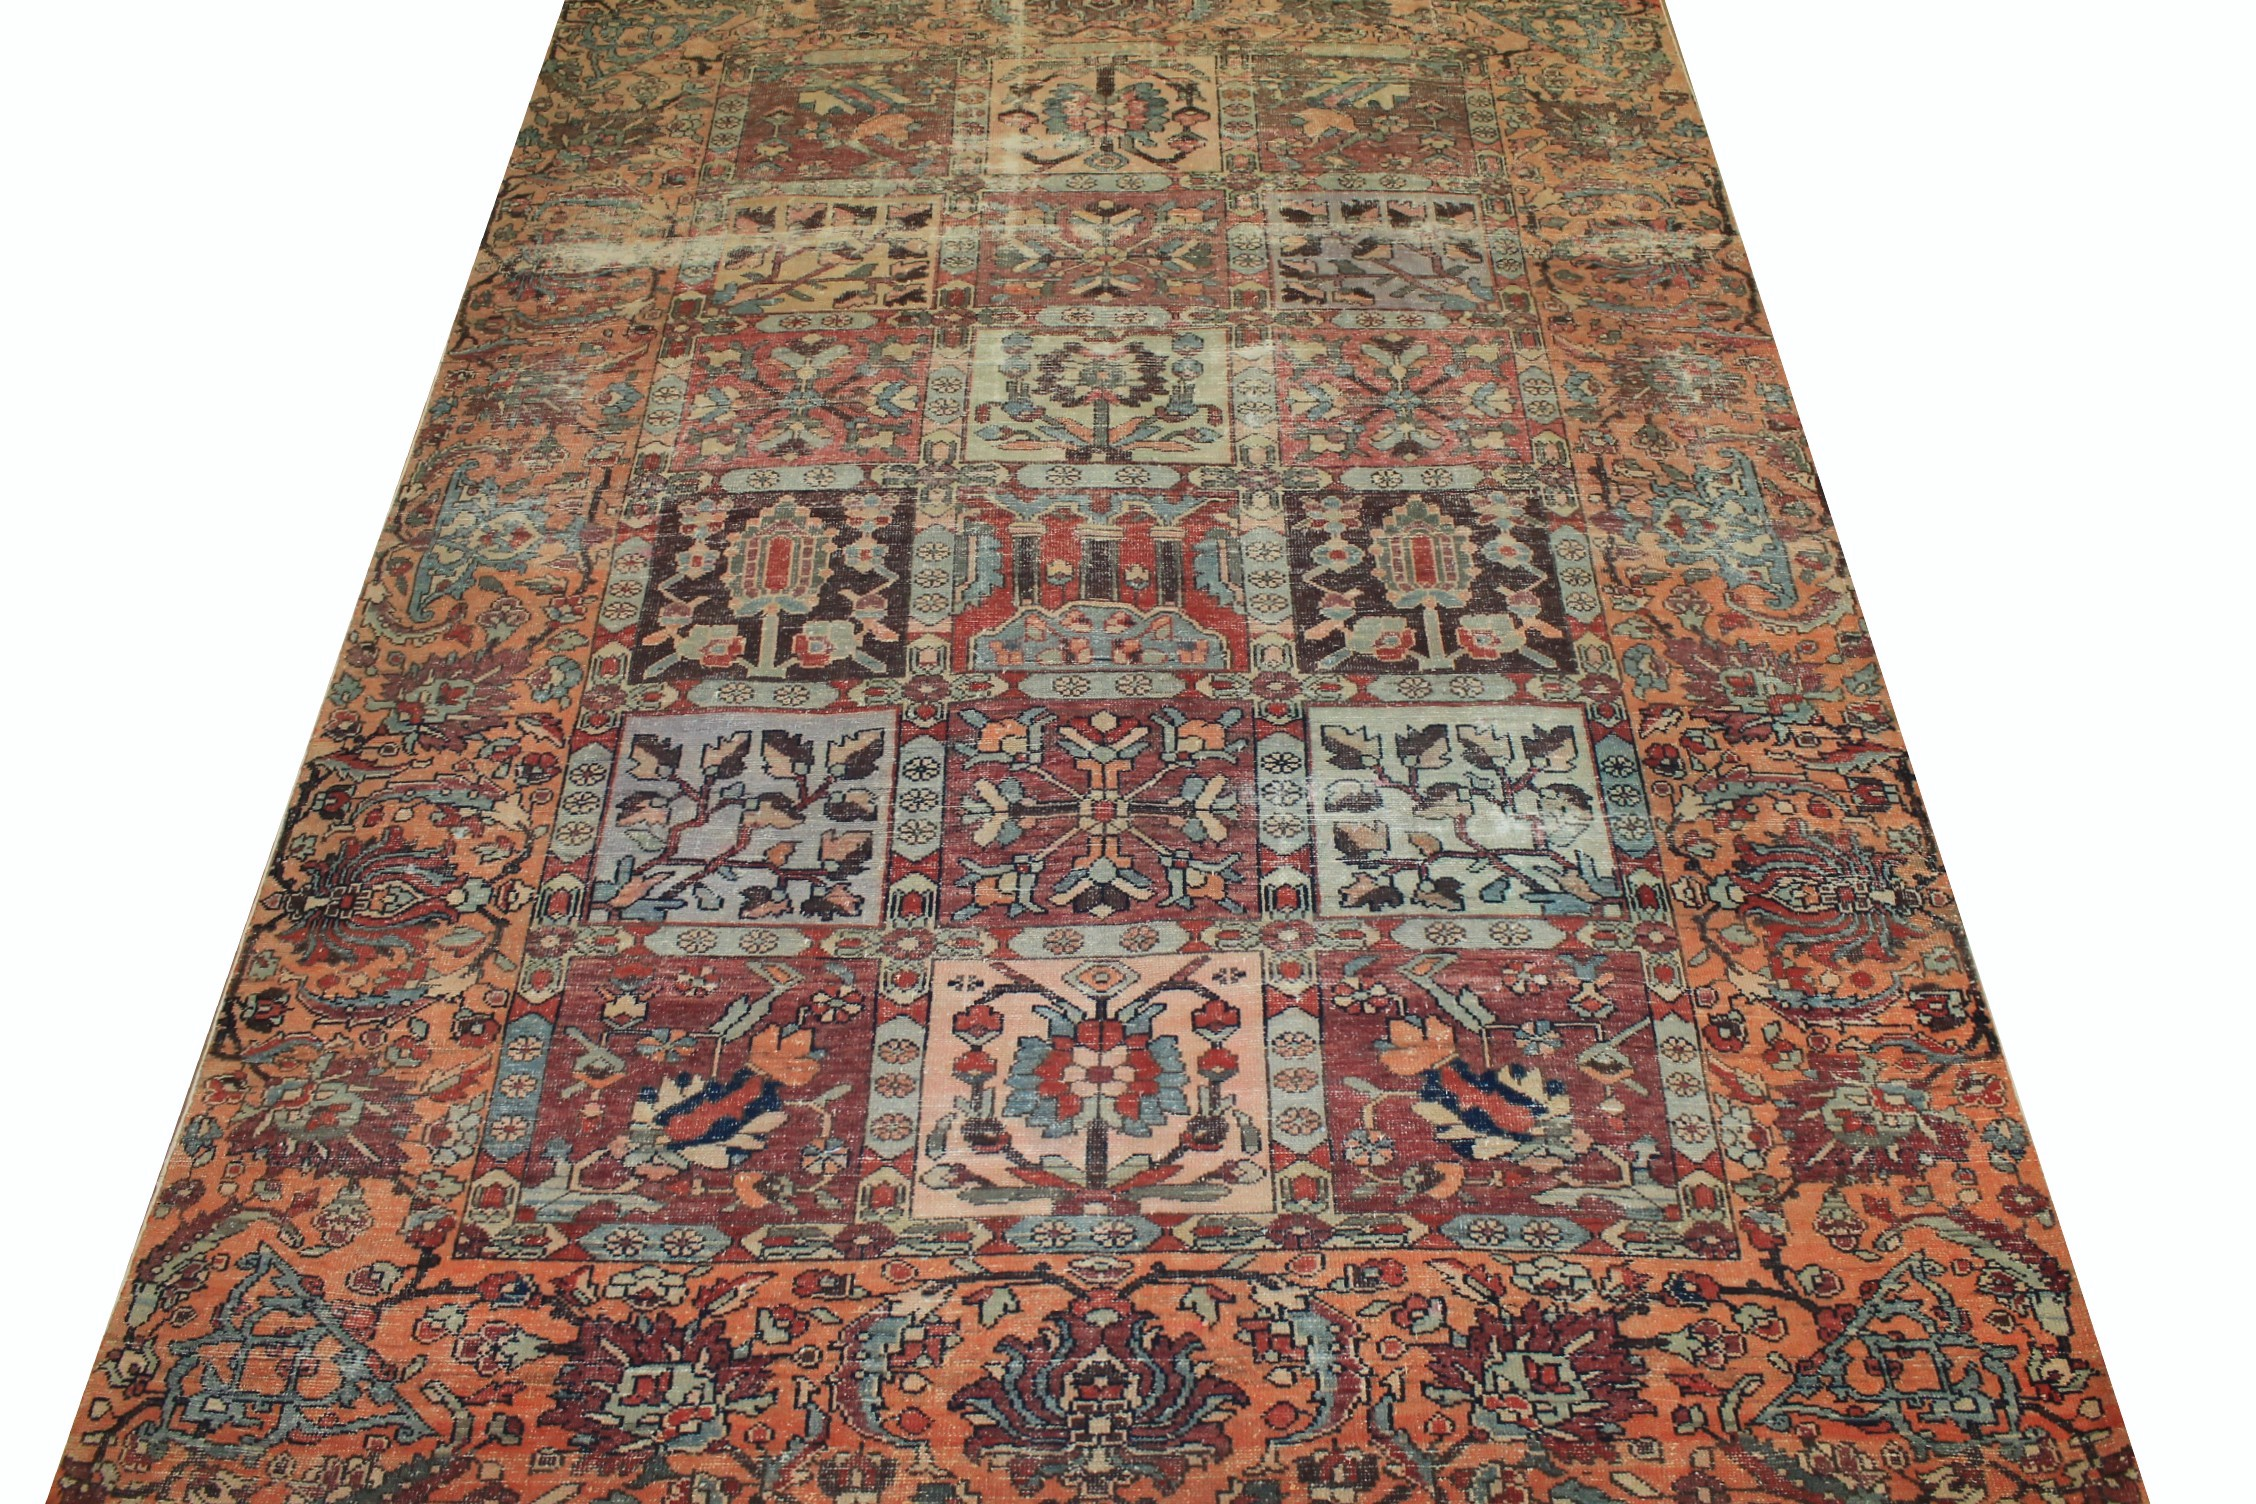 6x9 Vintage Hand Knotted Wool Area Rug - MR025325